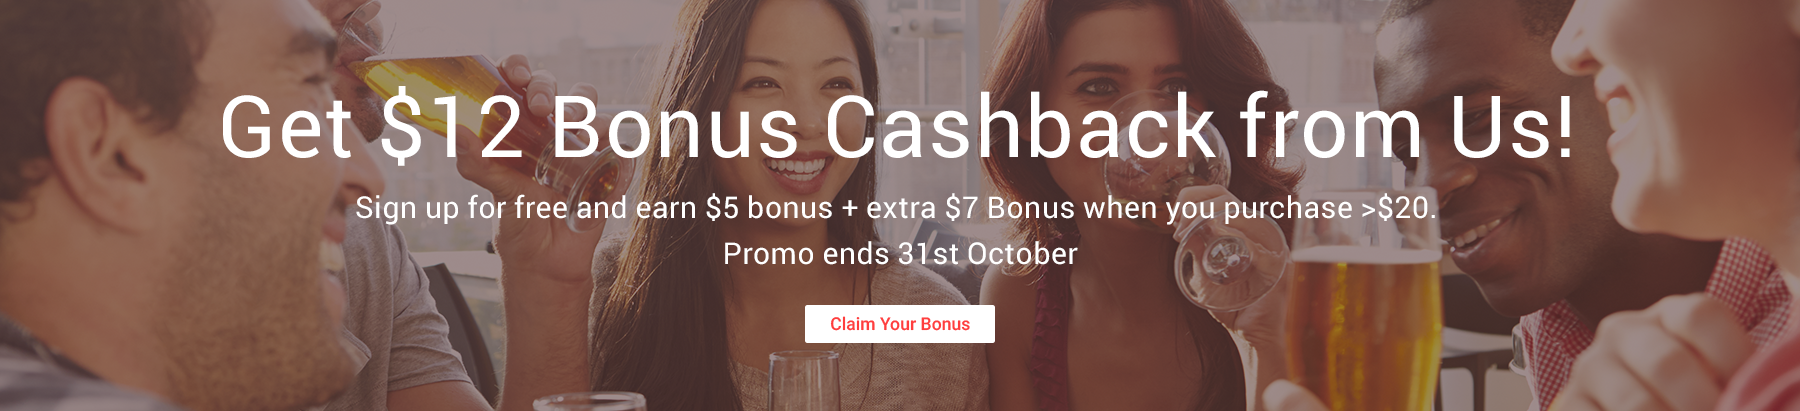 Here's a $5 Bonus from your friend!